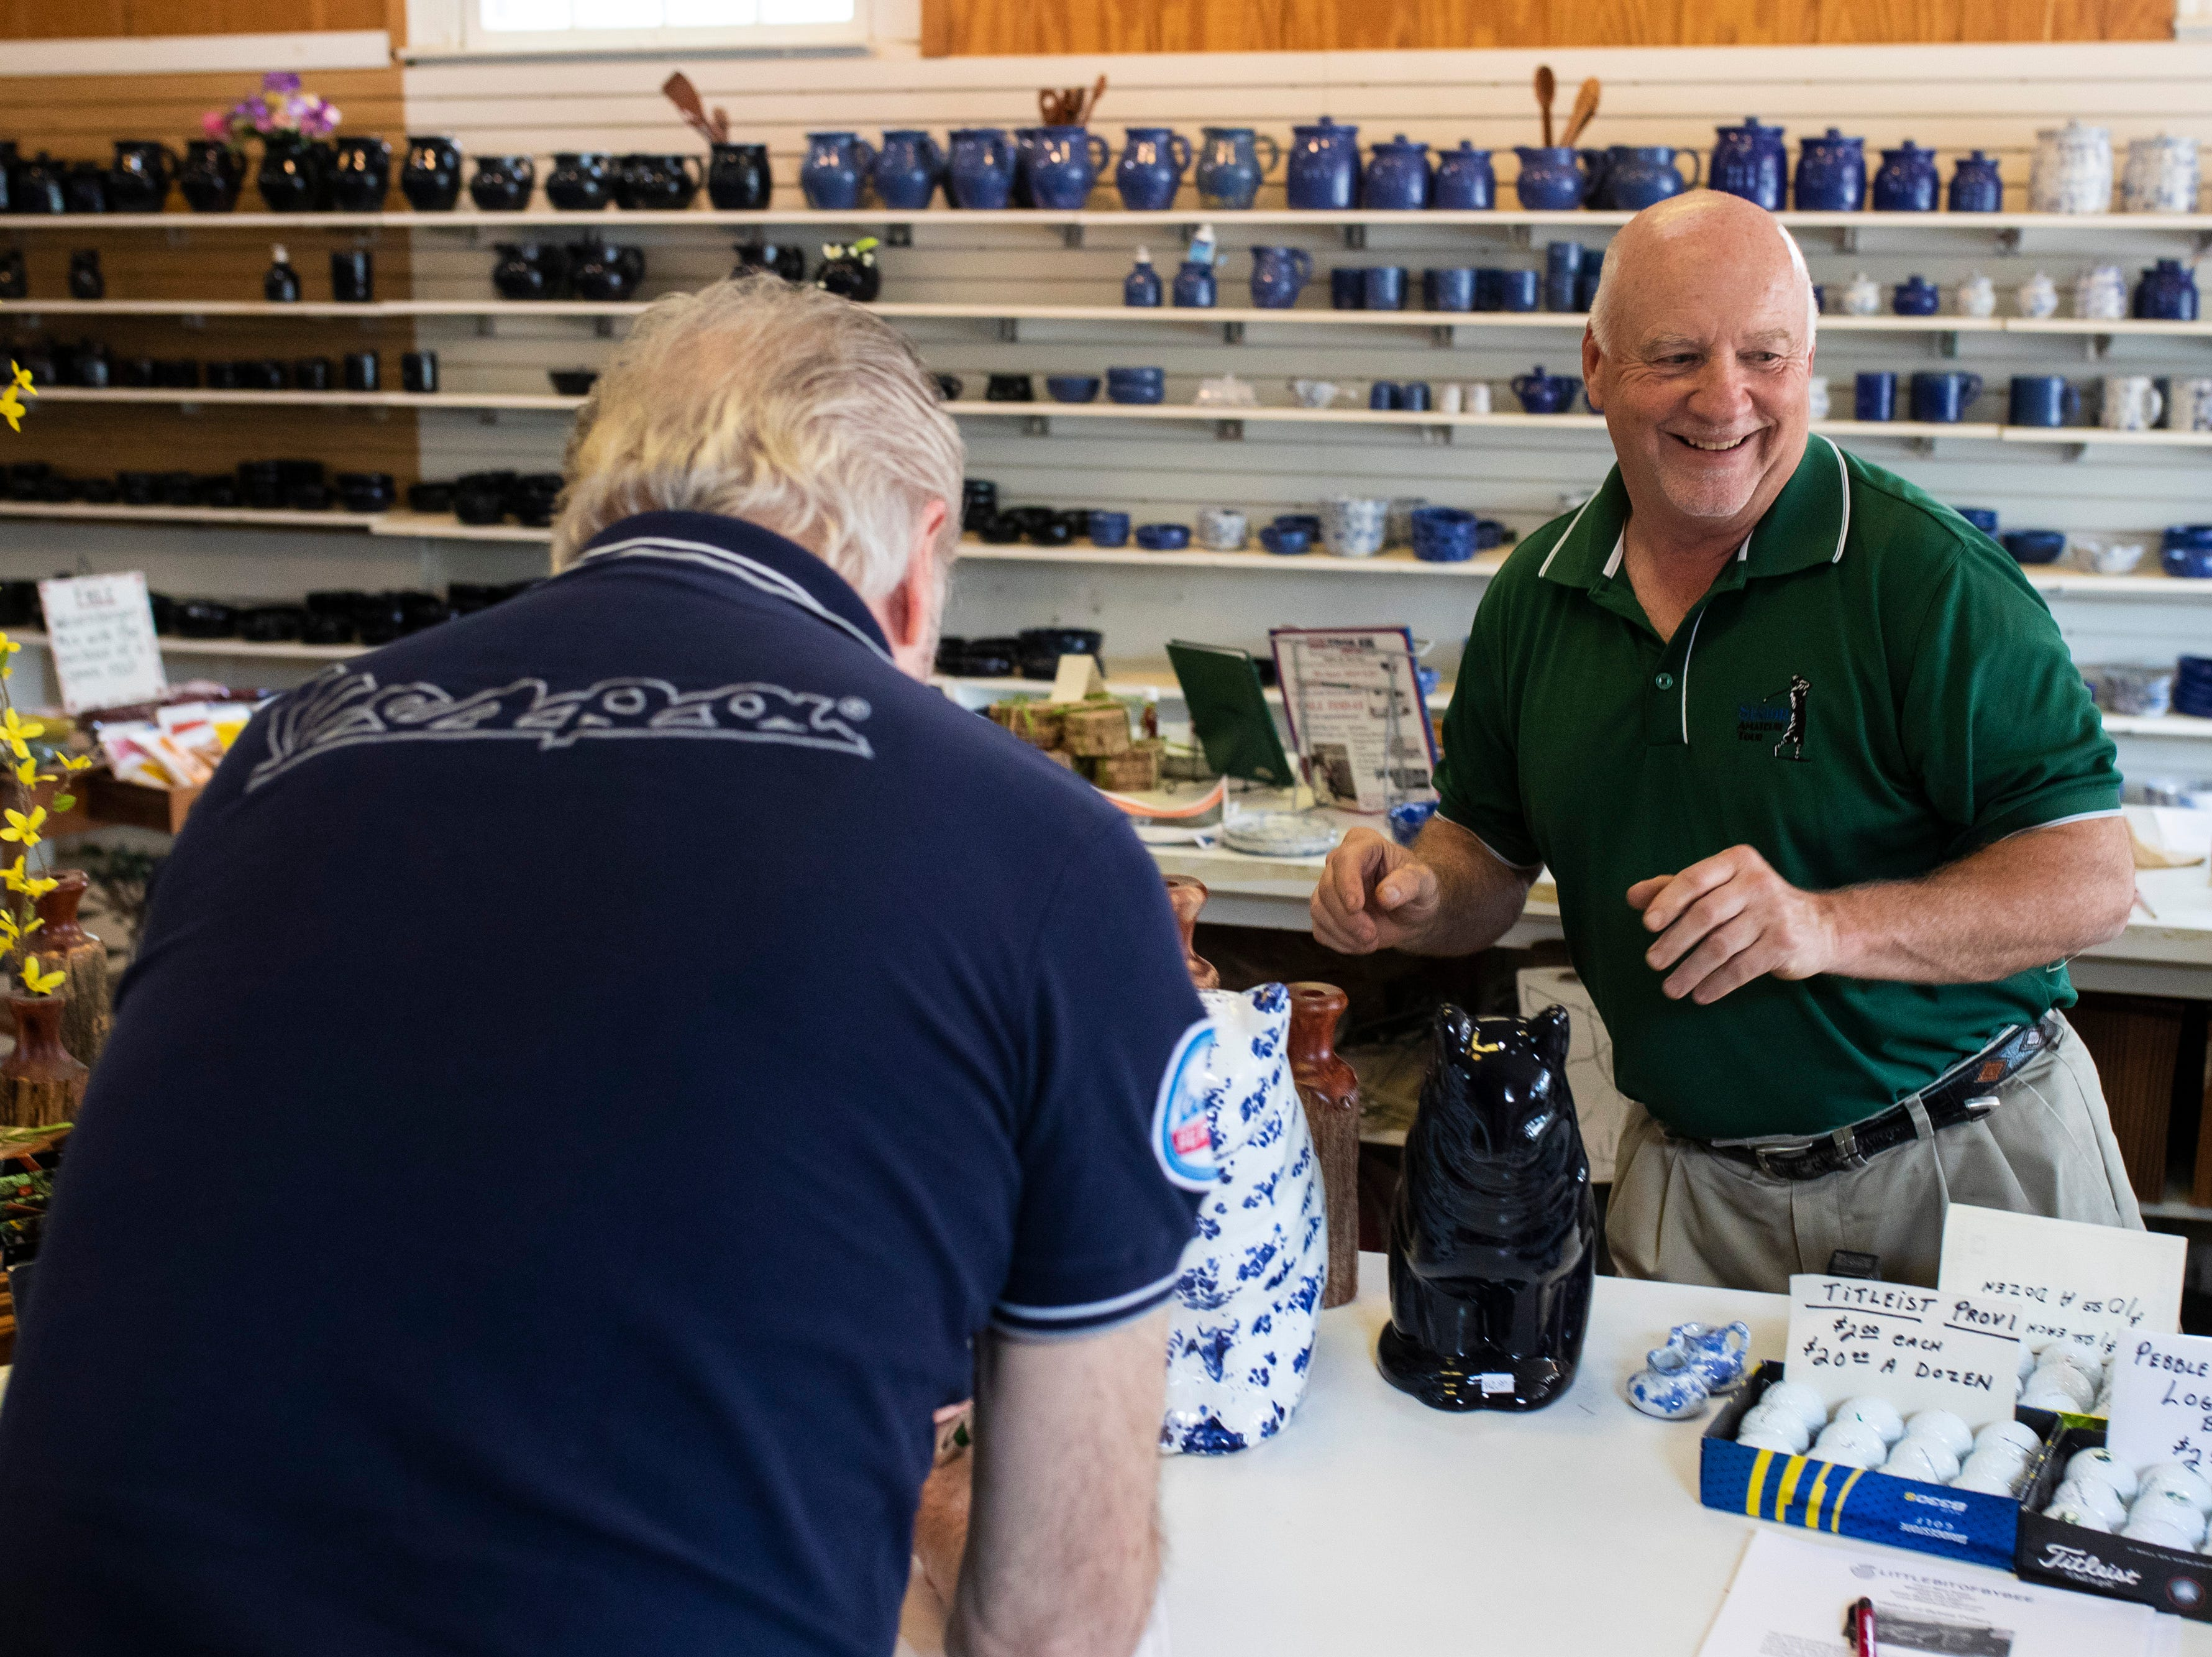 Ron Stambaugh assist a customer inside the Little Bit of Bybee pottery shop in the Middletown neighborhood. May 8, 2019